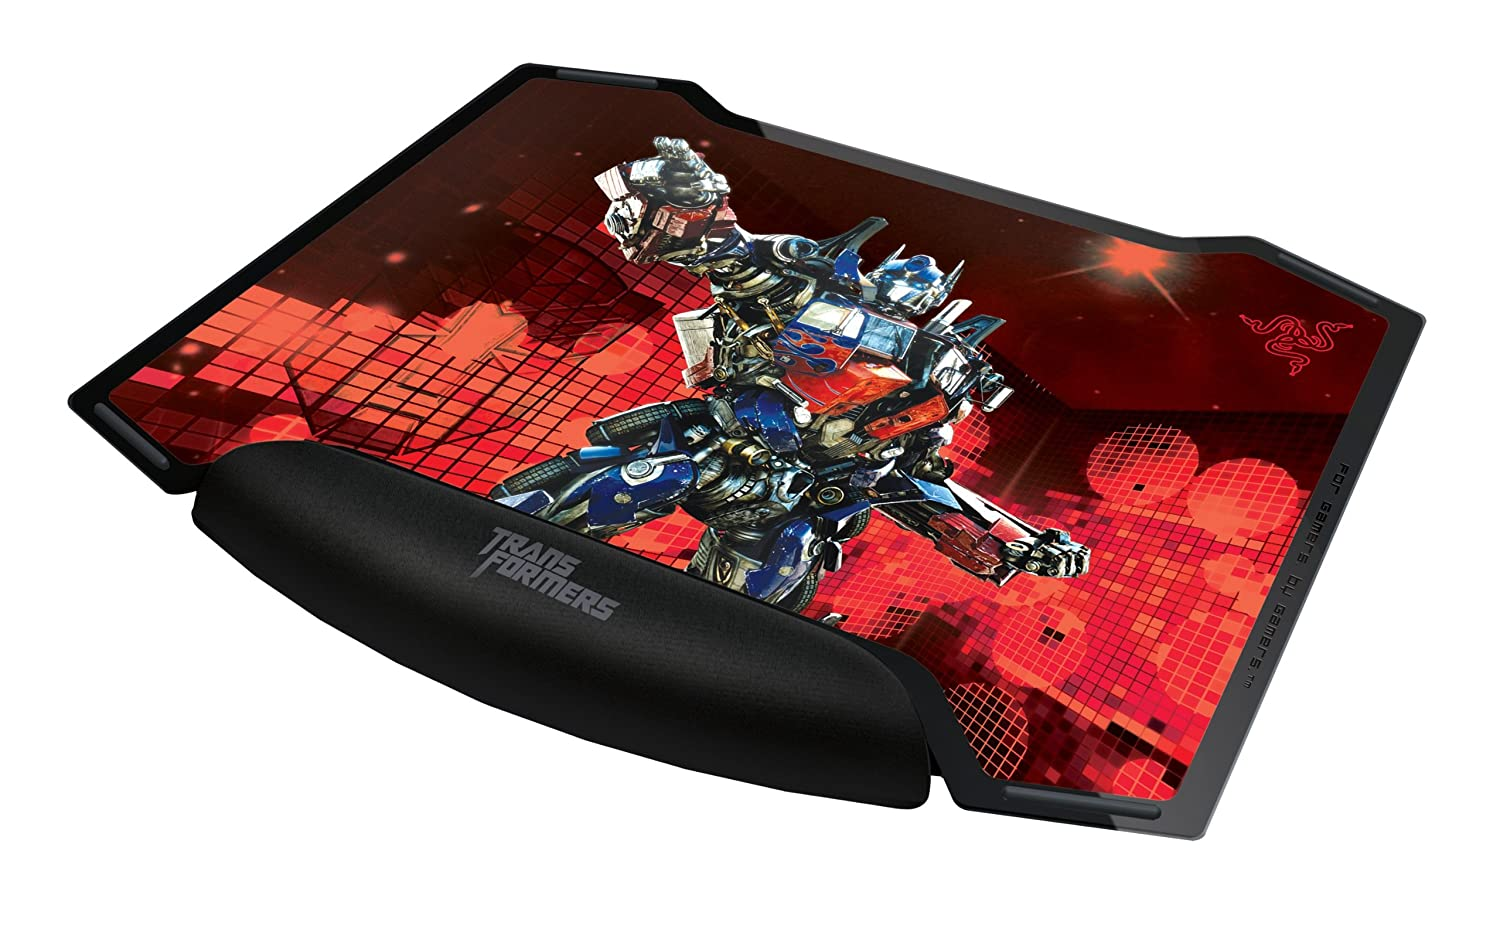 Razer Vespula Transformers 3 Collector s Edition Dual-Sided Gaming Mouse Mat RZ02-00320200-R3U1